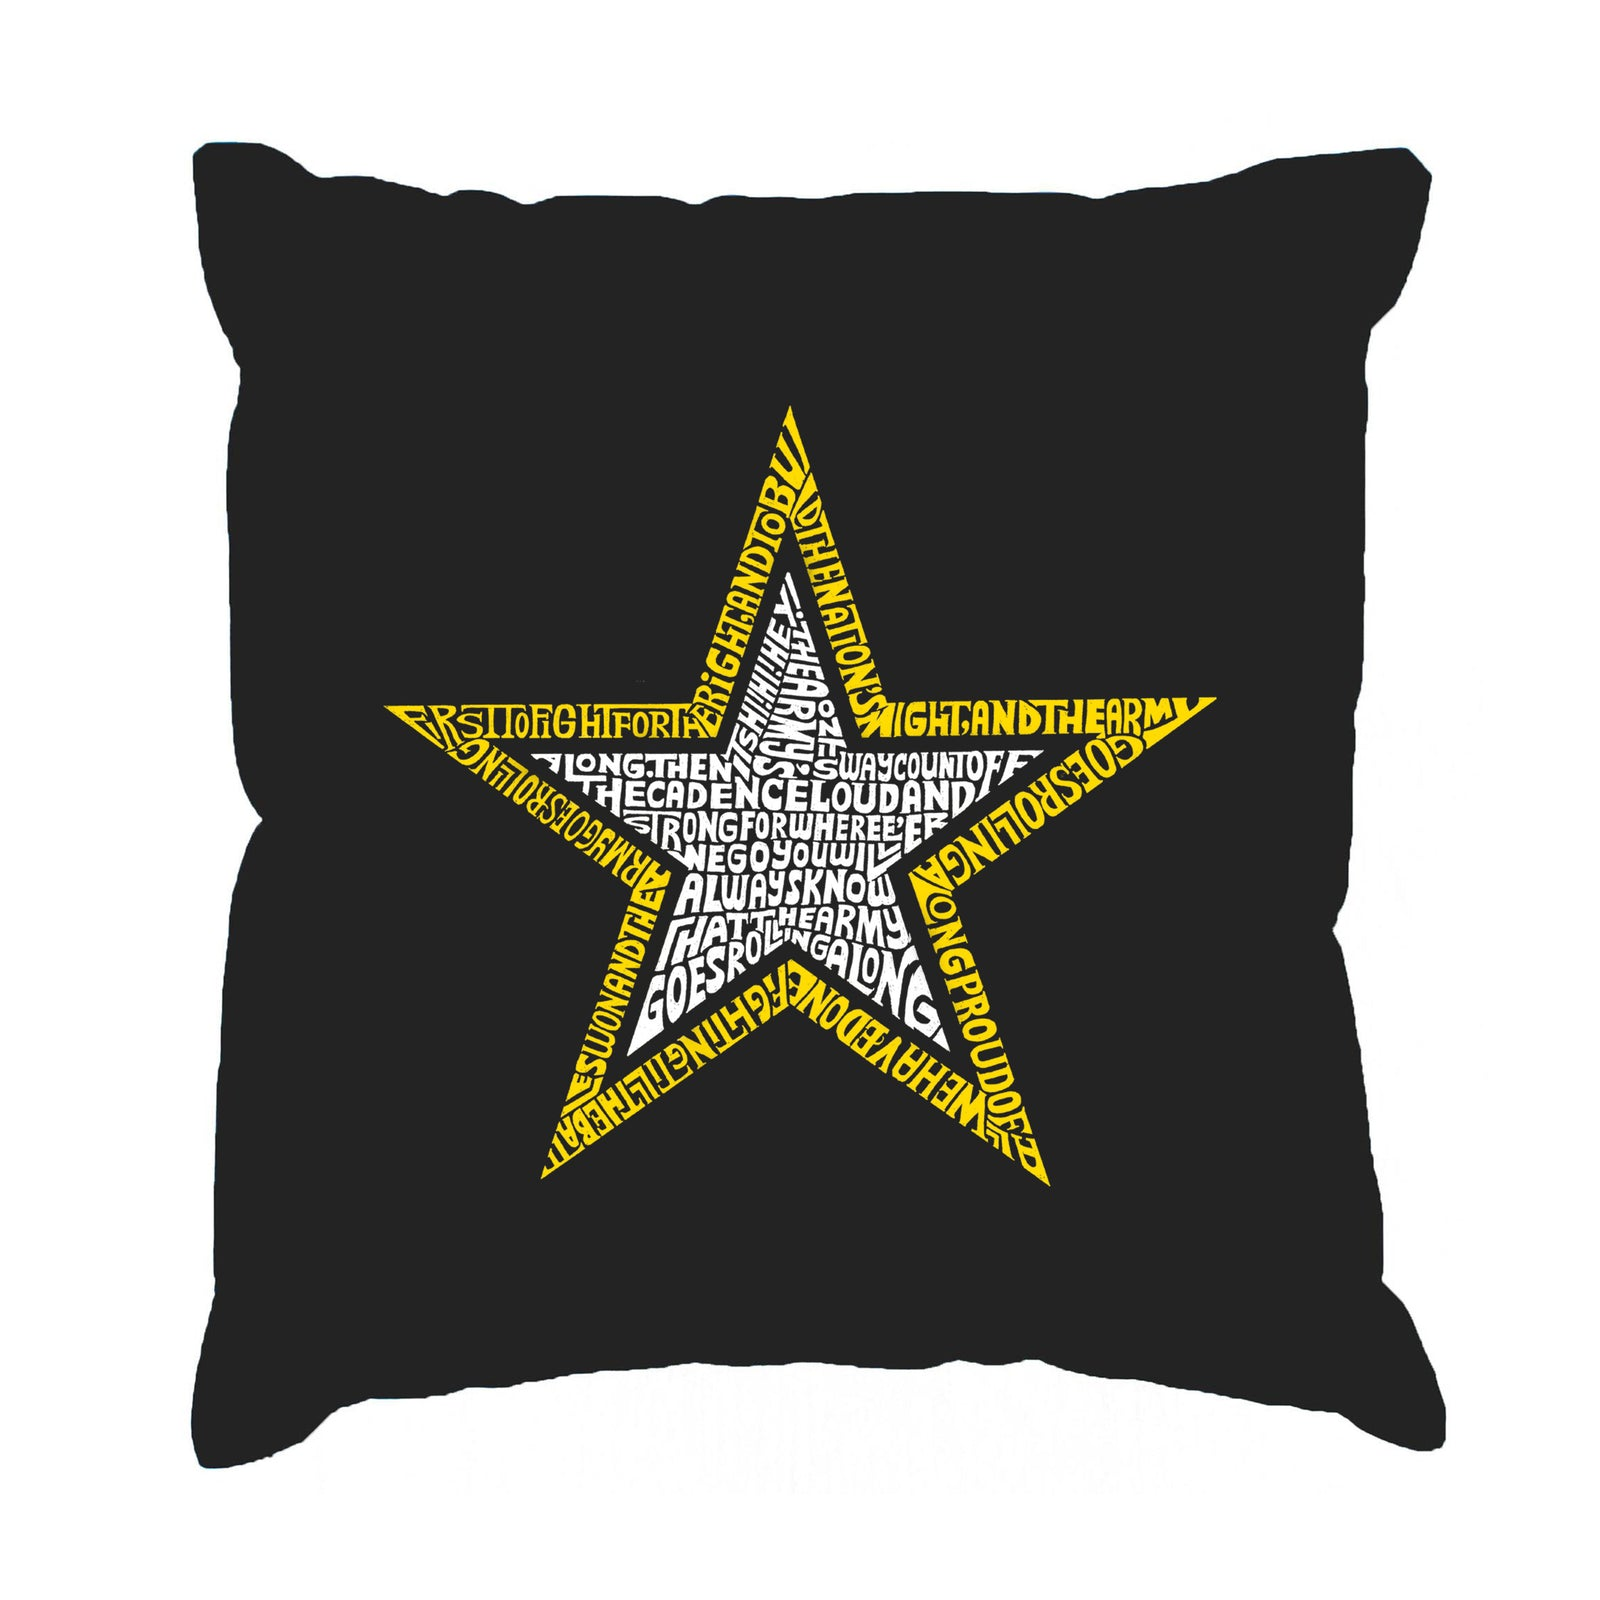 Throw Pillow Cover - LYRICS TO THE ARMY SONG